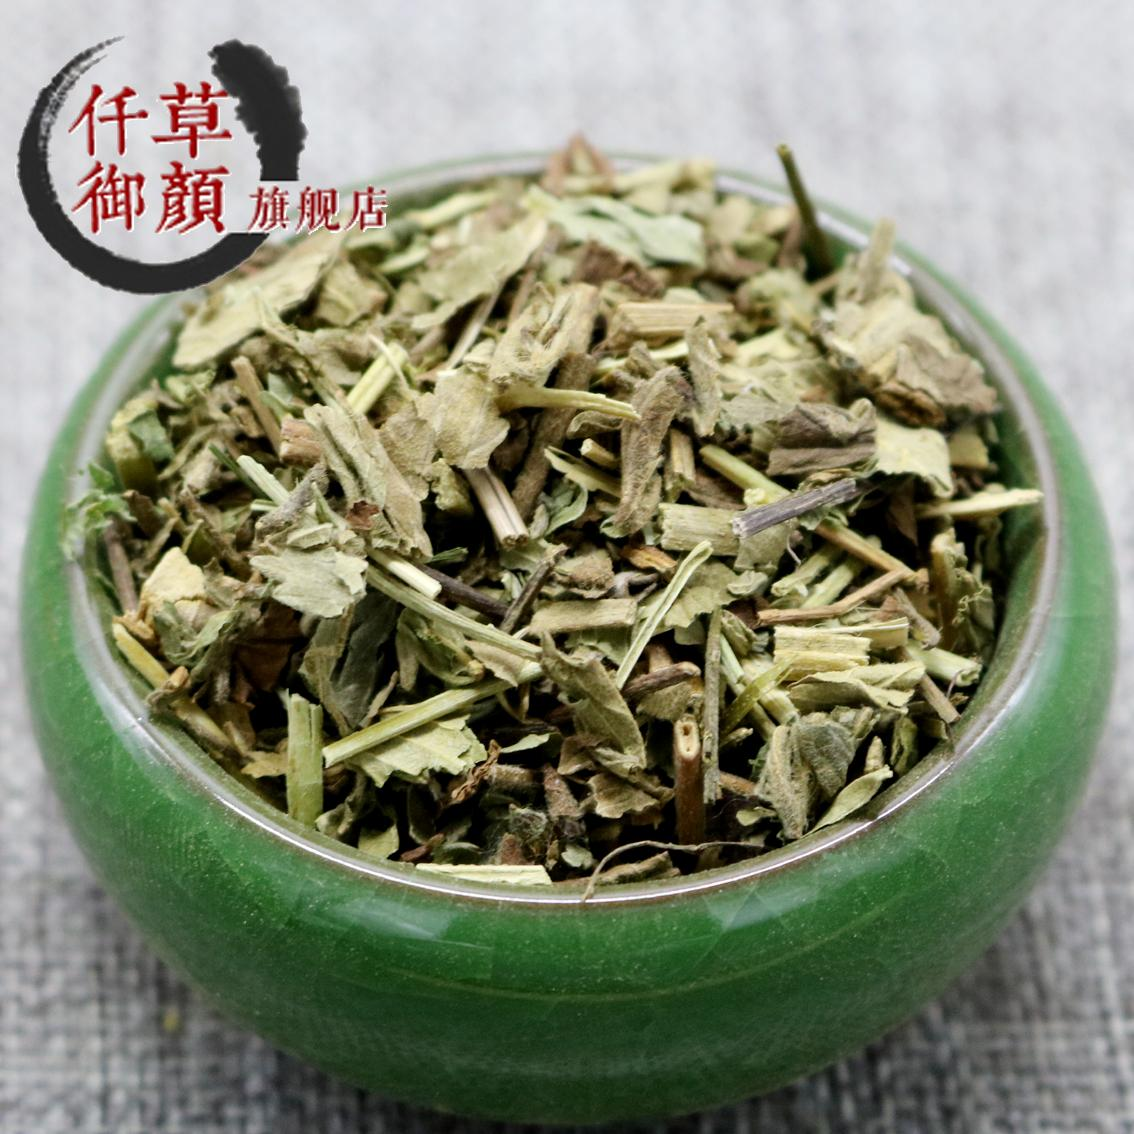 Audience full of 39 yuan shipping qian yu yan grass agrimony agrimony 500g spike grass